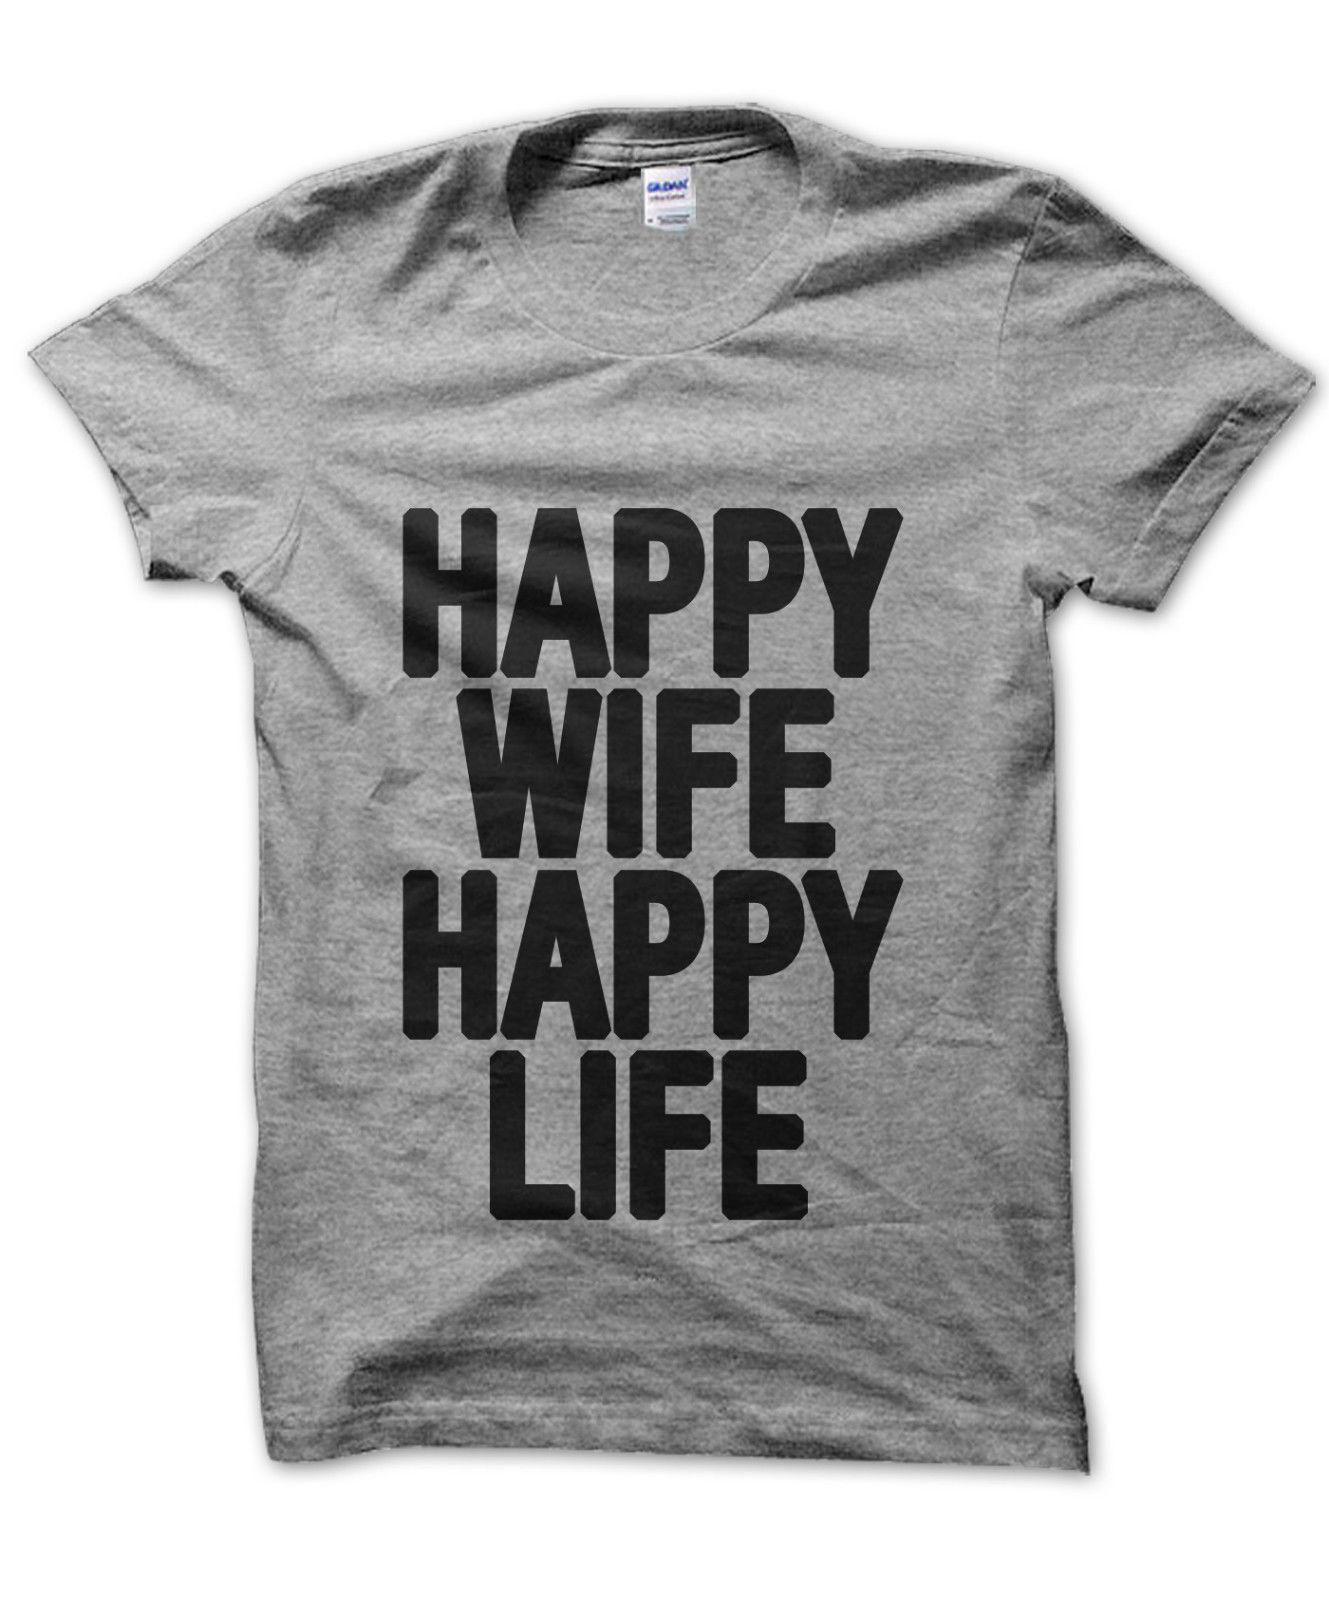 9195ba05e Happy Wife Happy Life Unisex T Shirt Funny Husband Shirt Joke Marriage Tee  Funny Unisex Casual Tee Gift Shirts T Funky T Shirts For Women From  Fat_dad, ...